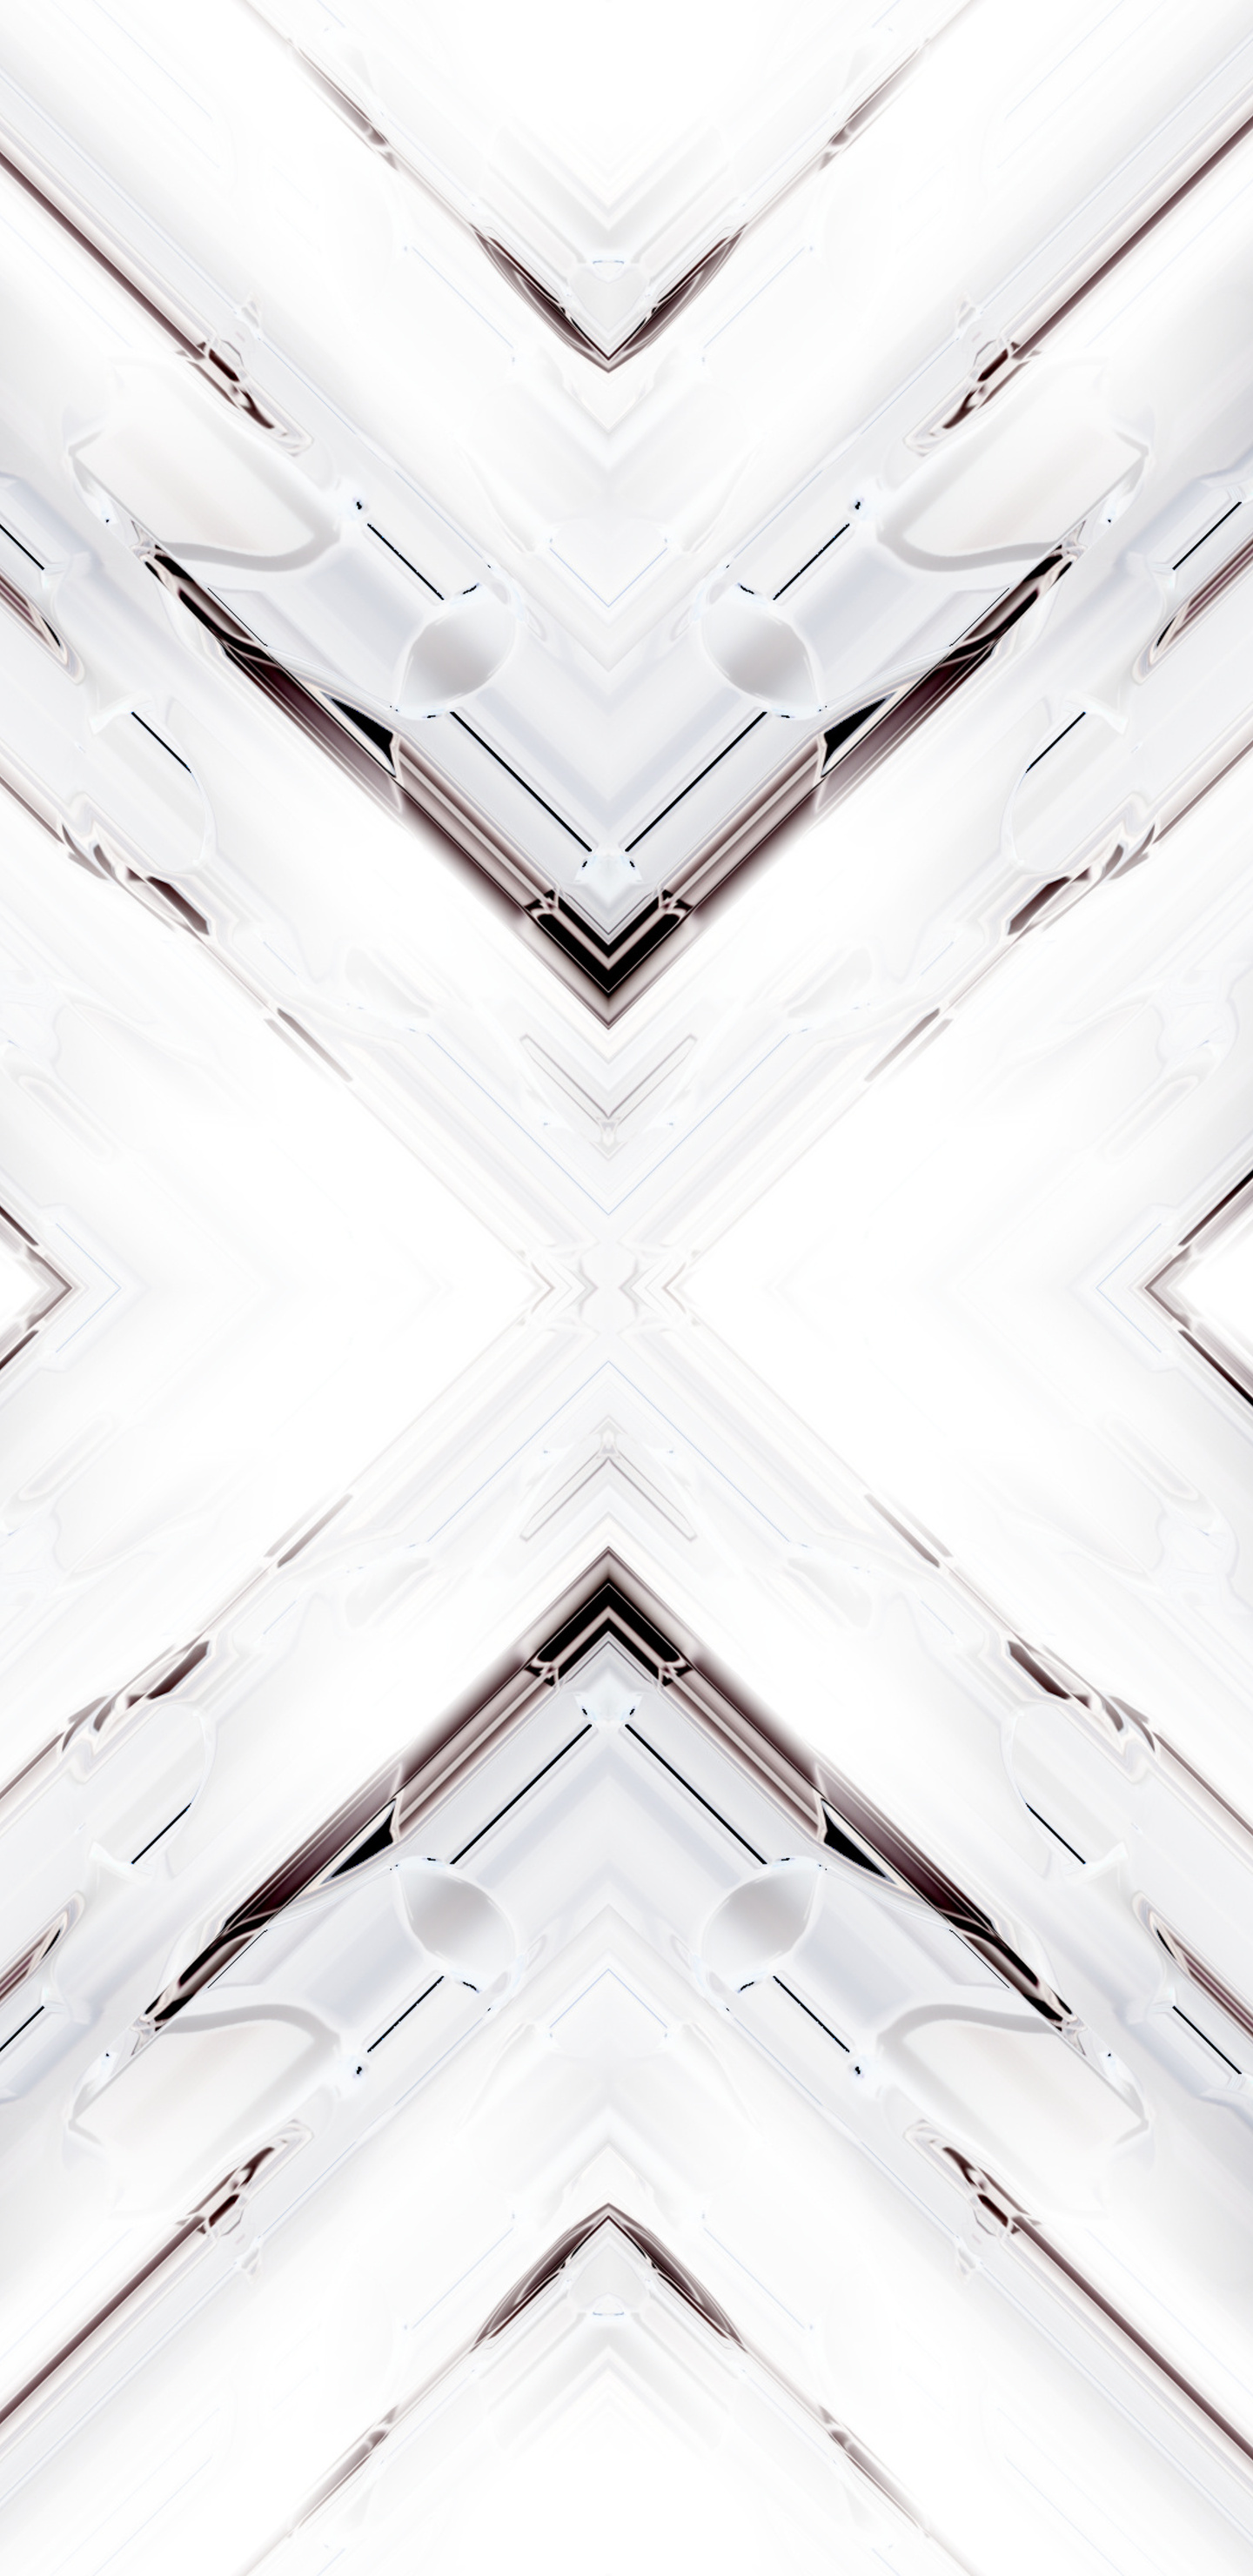 1440x2960 White Render Abstract Art 4k Samsung Galaxy Note 9 8 S9 S8 S8 Qhd Hd 4k Wallpapers Images Backgrounds Photos And Pictures